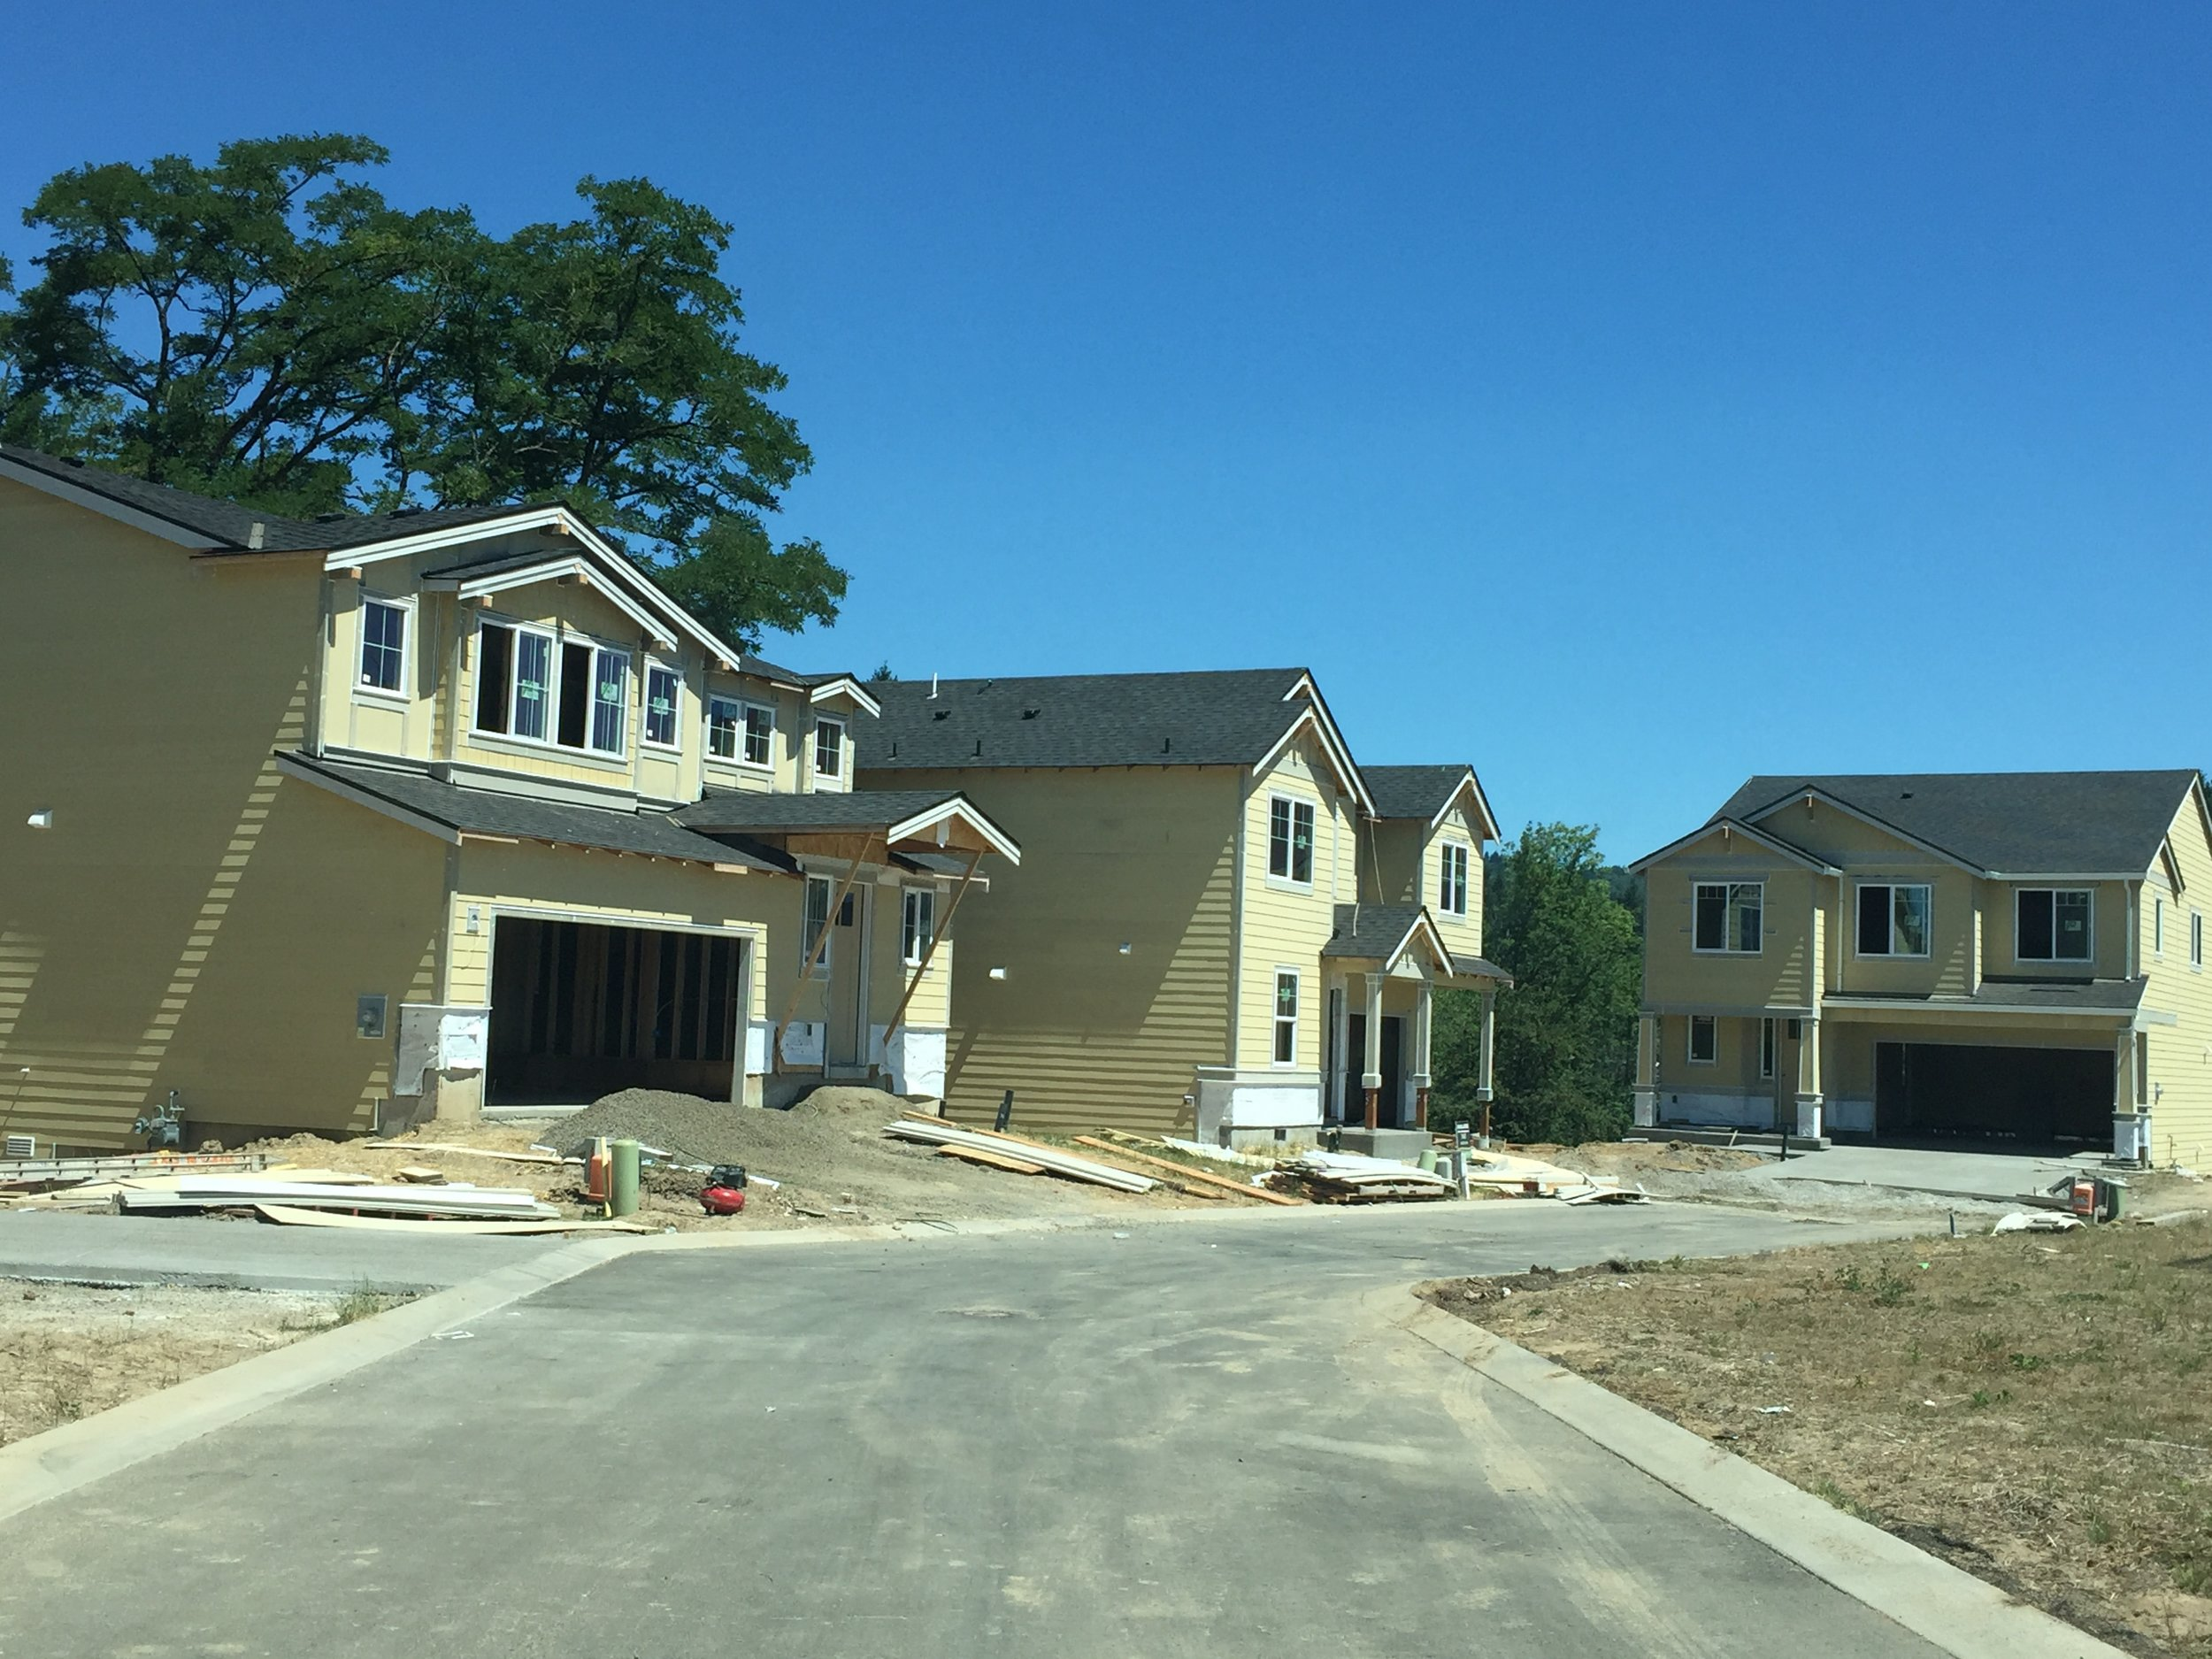 I strongly believe that builders should allow buyers to protect their (very large) purchase through professional home inspections completed during the construction process. Why do you think some of them don't allow this?